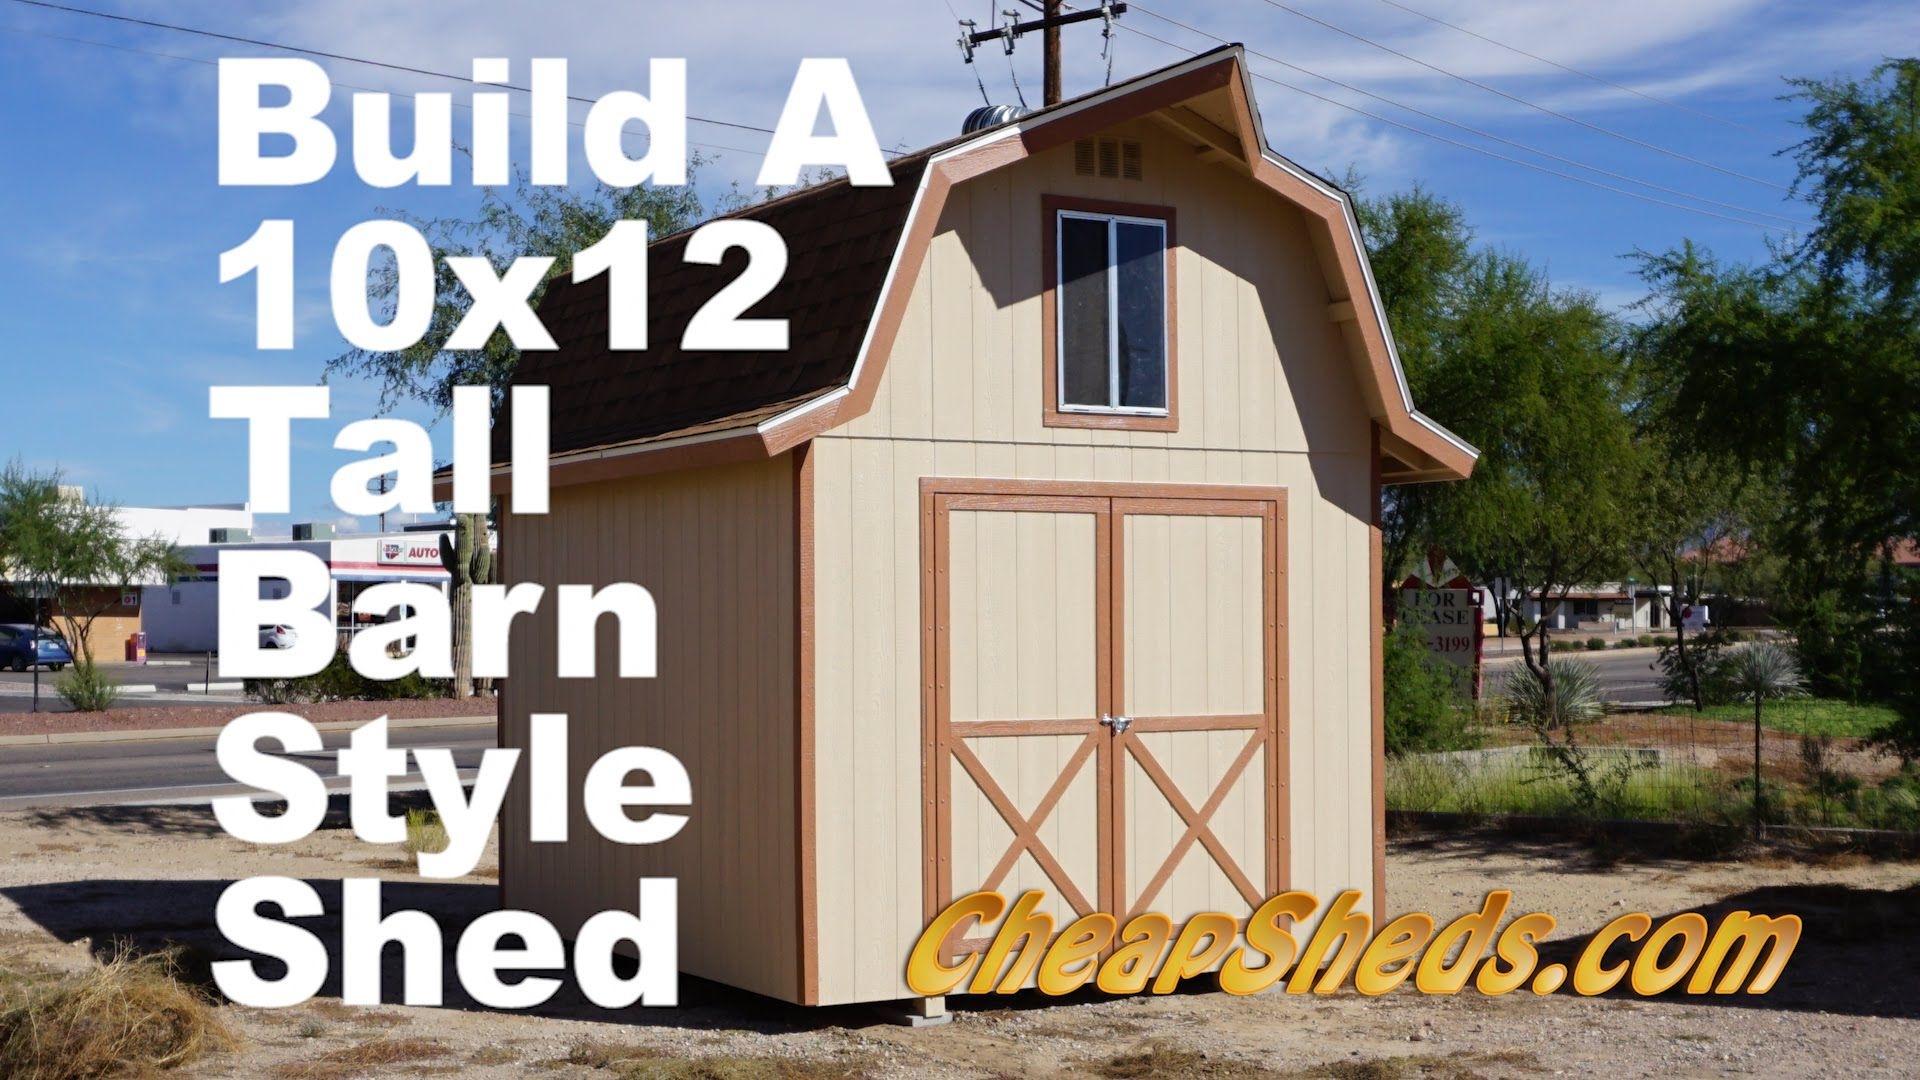 Build A 10x12 Tall Barn Style Shed With Loft Building A Shed